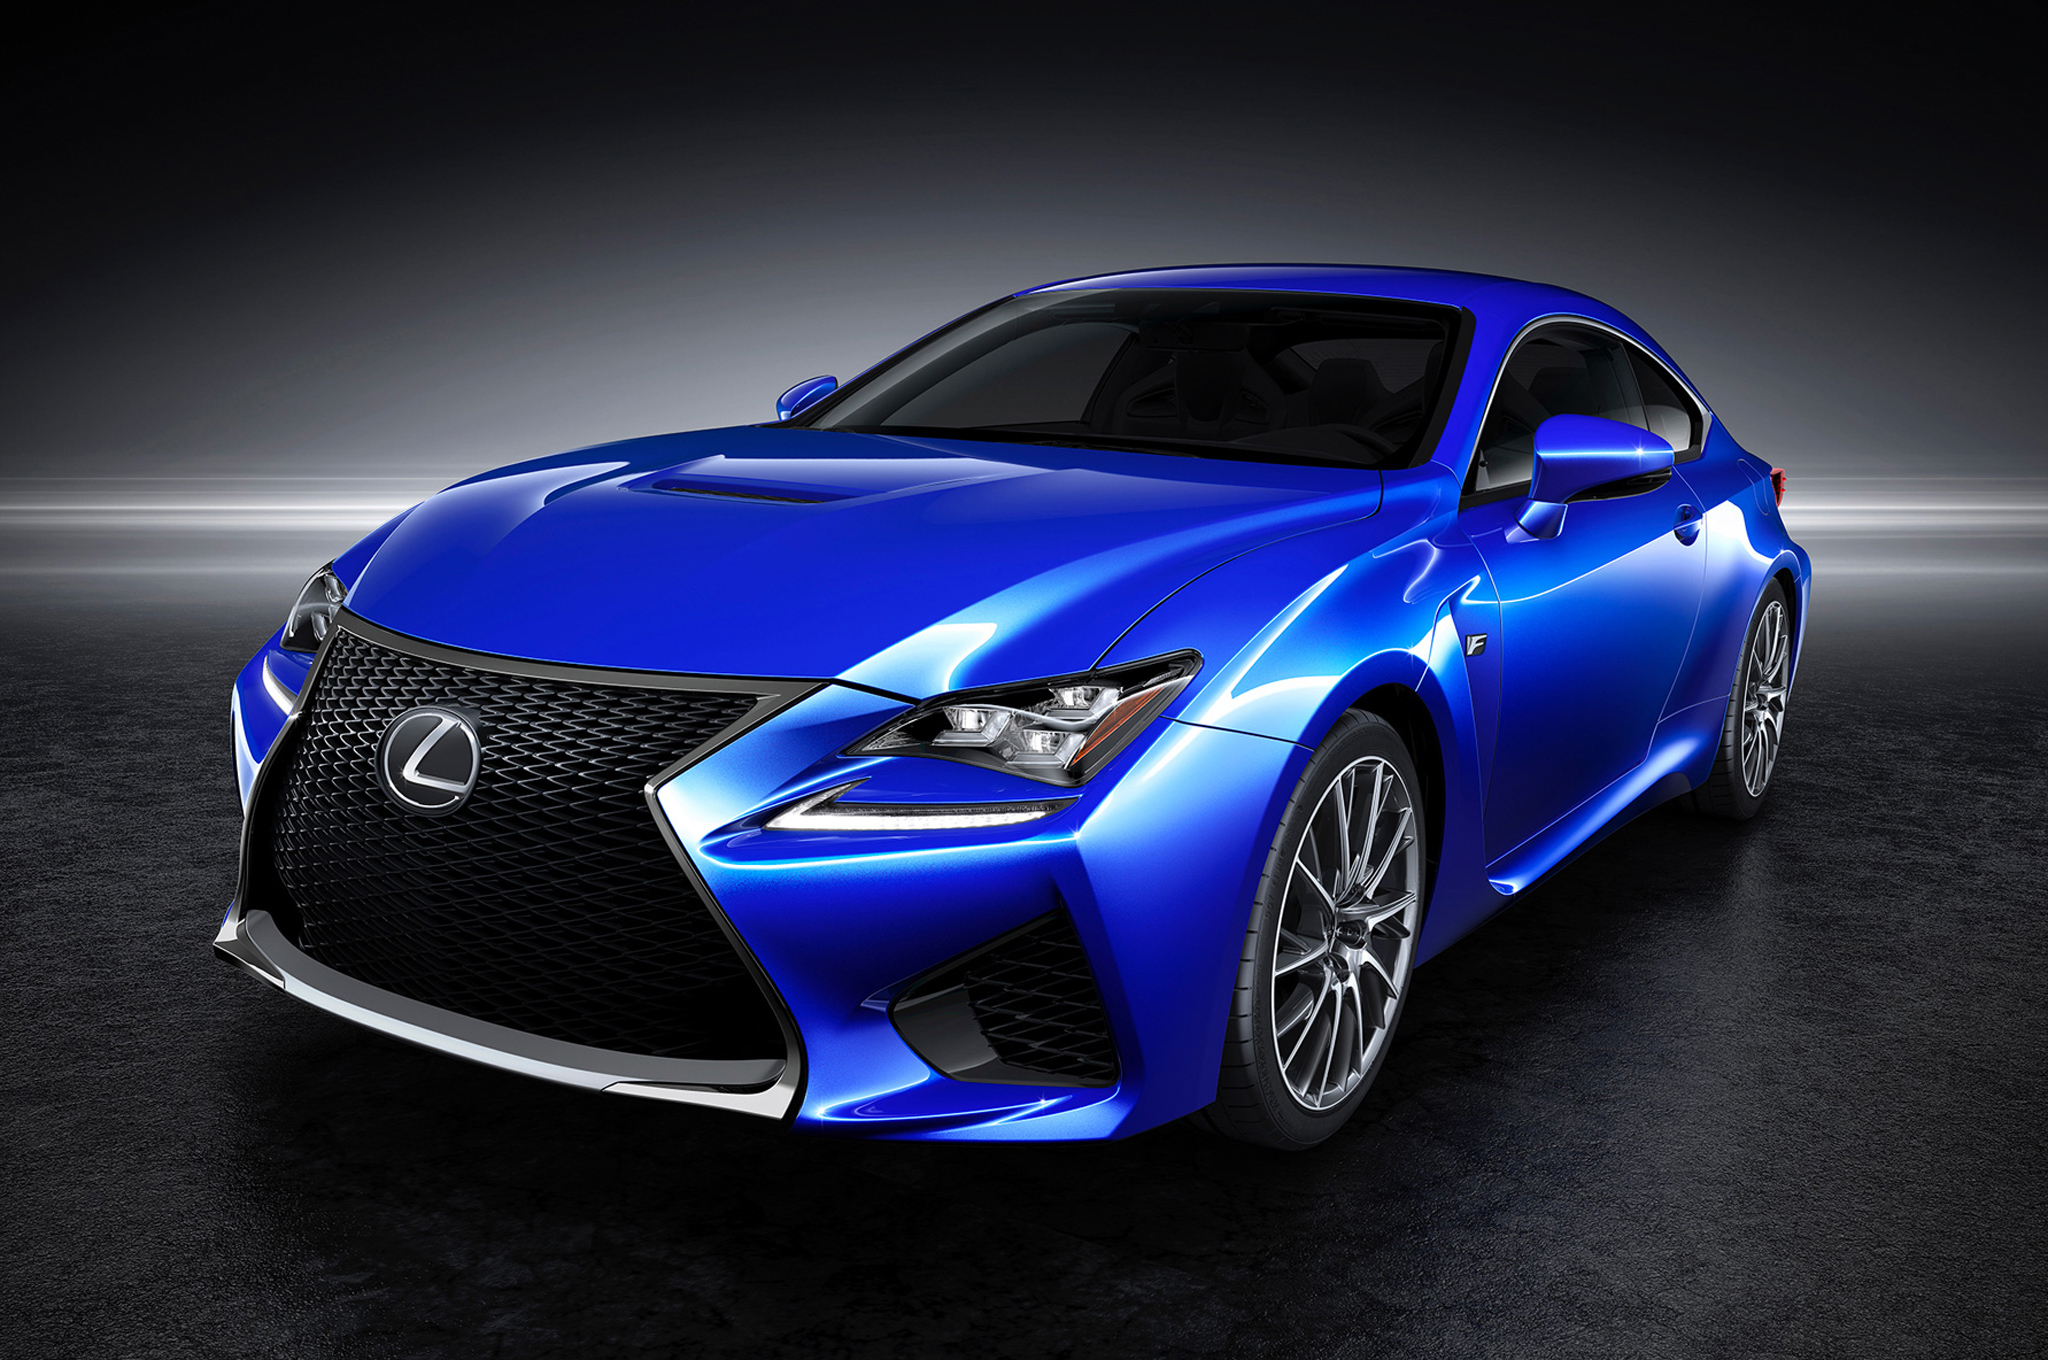 Five Questions for Lexus RC F, BMW M4 Engineers - The Kiinote